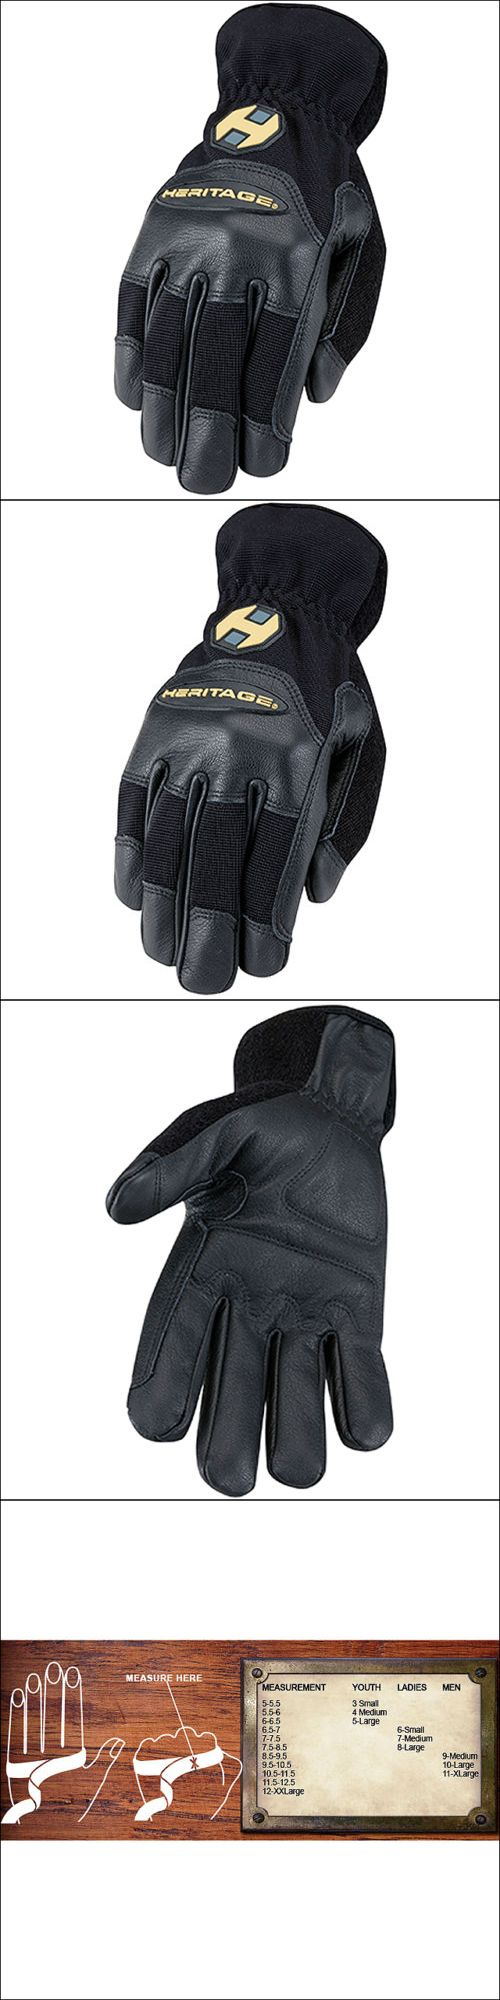 Riding Gloves 95104: 9 Size Heritage Trainer Horse Riding Stretchable Goatskin Leather Gloves Black -> BUY IT NOW ONLY: $32.99 on eBay!